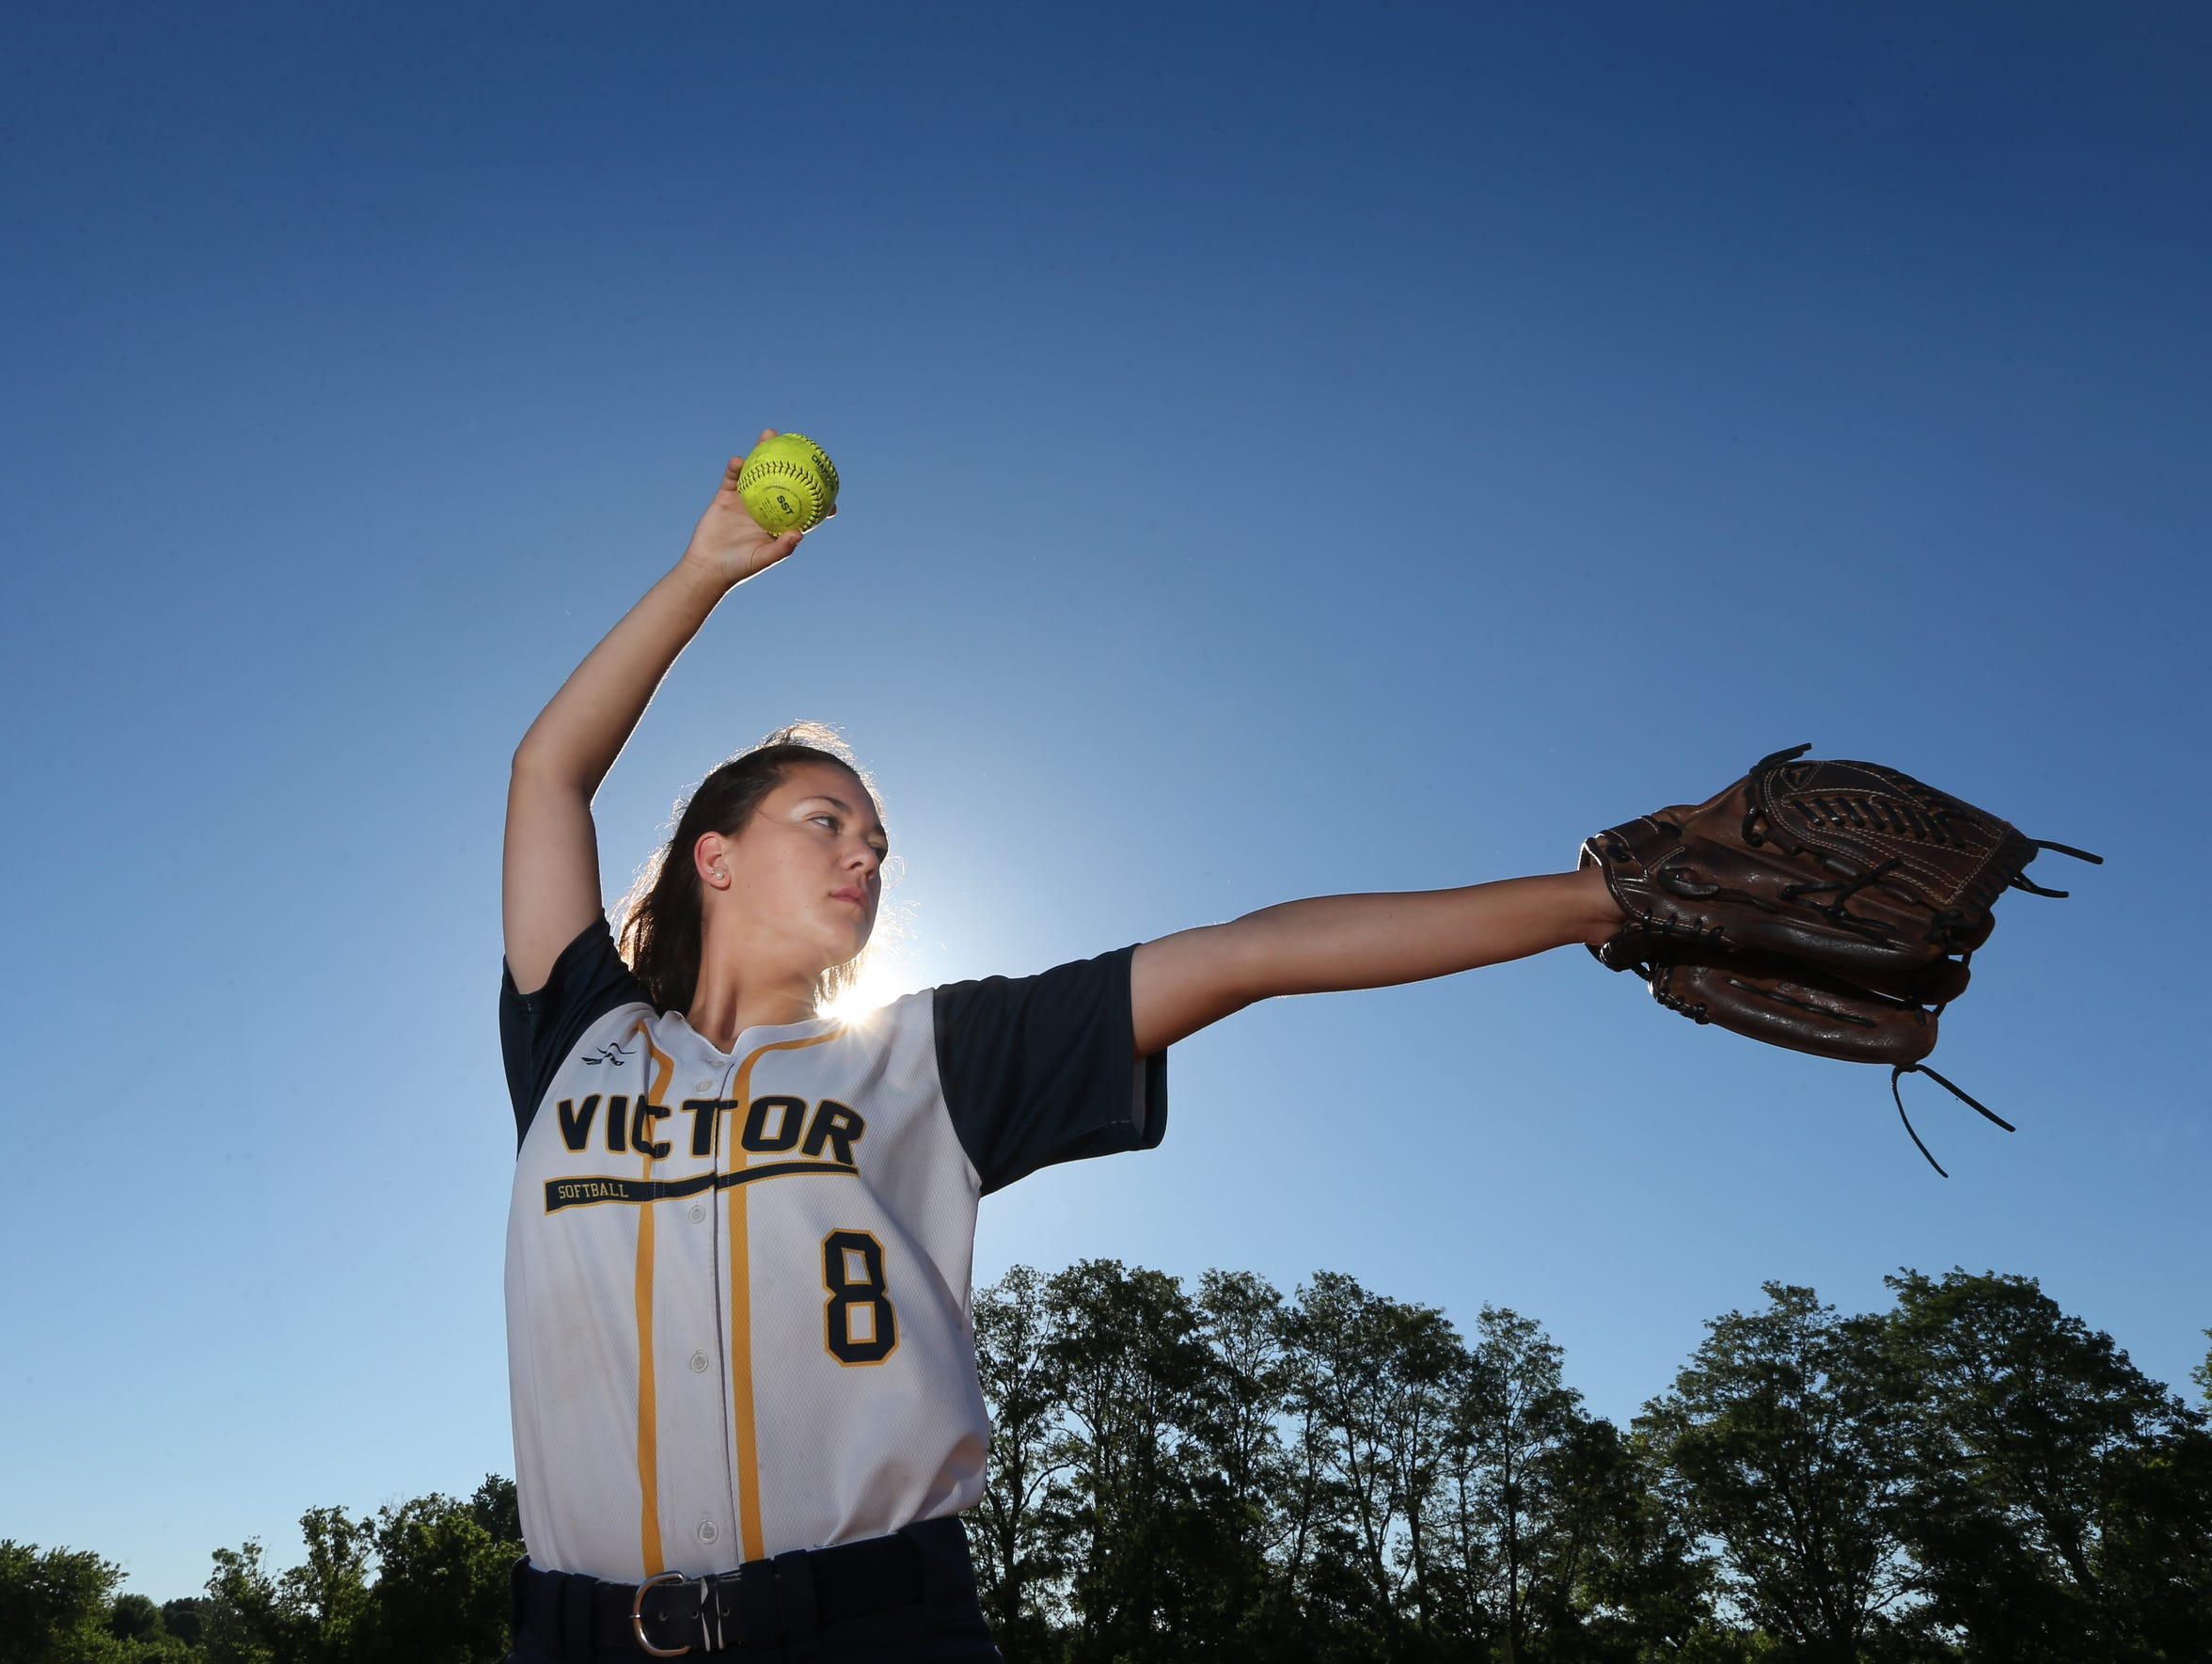 Victor's Katie Sidare on the mound at Victor High School